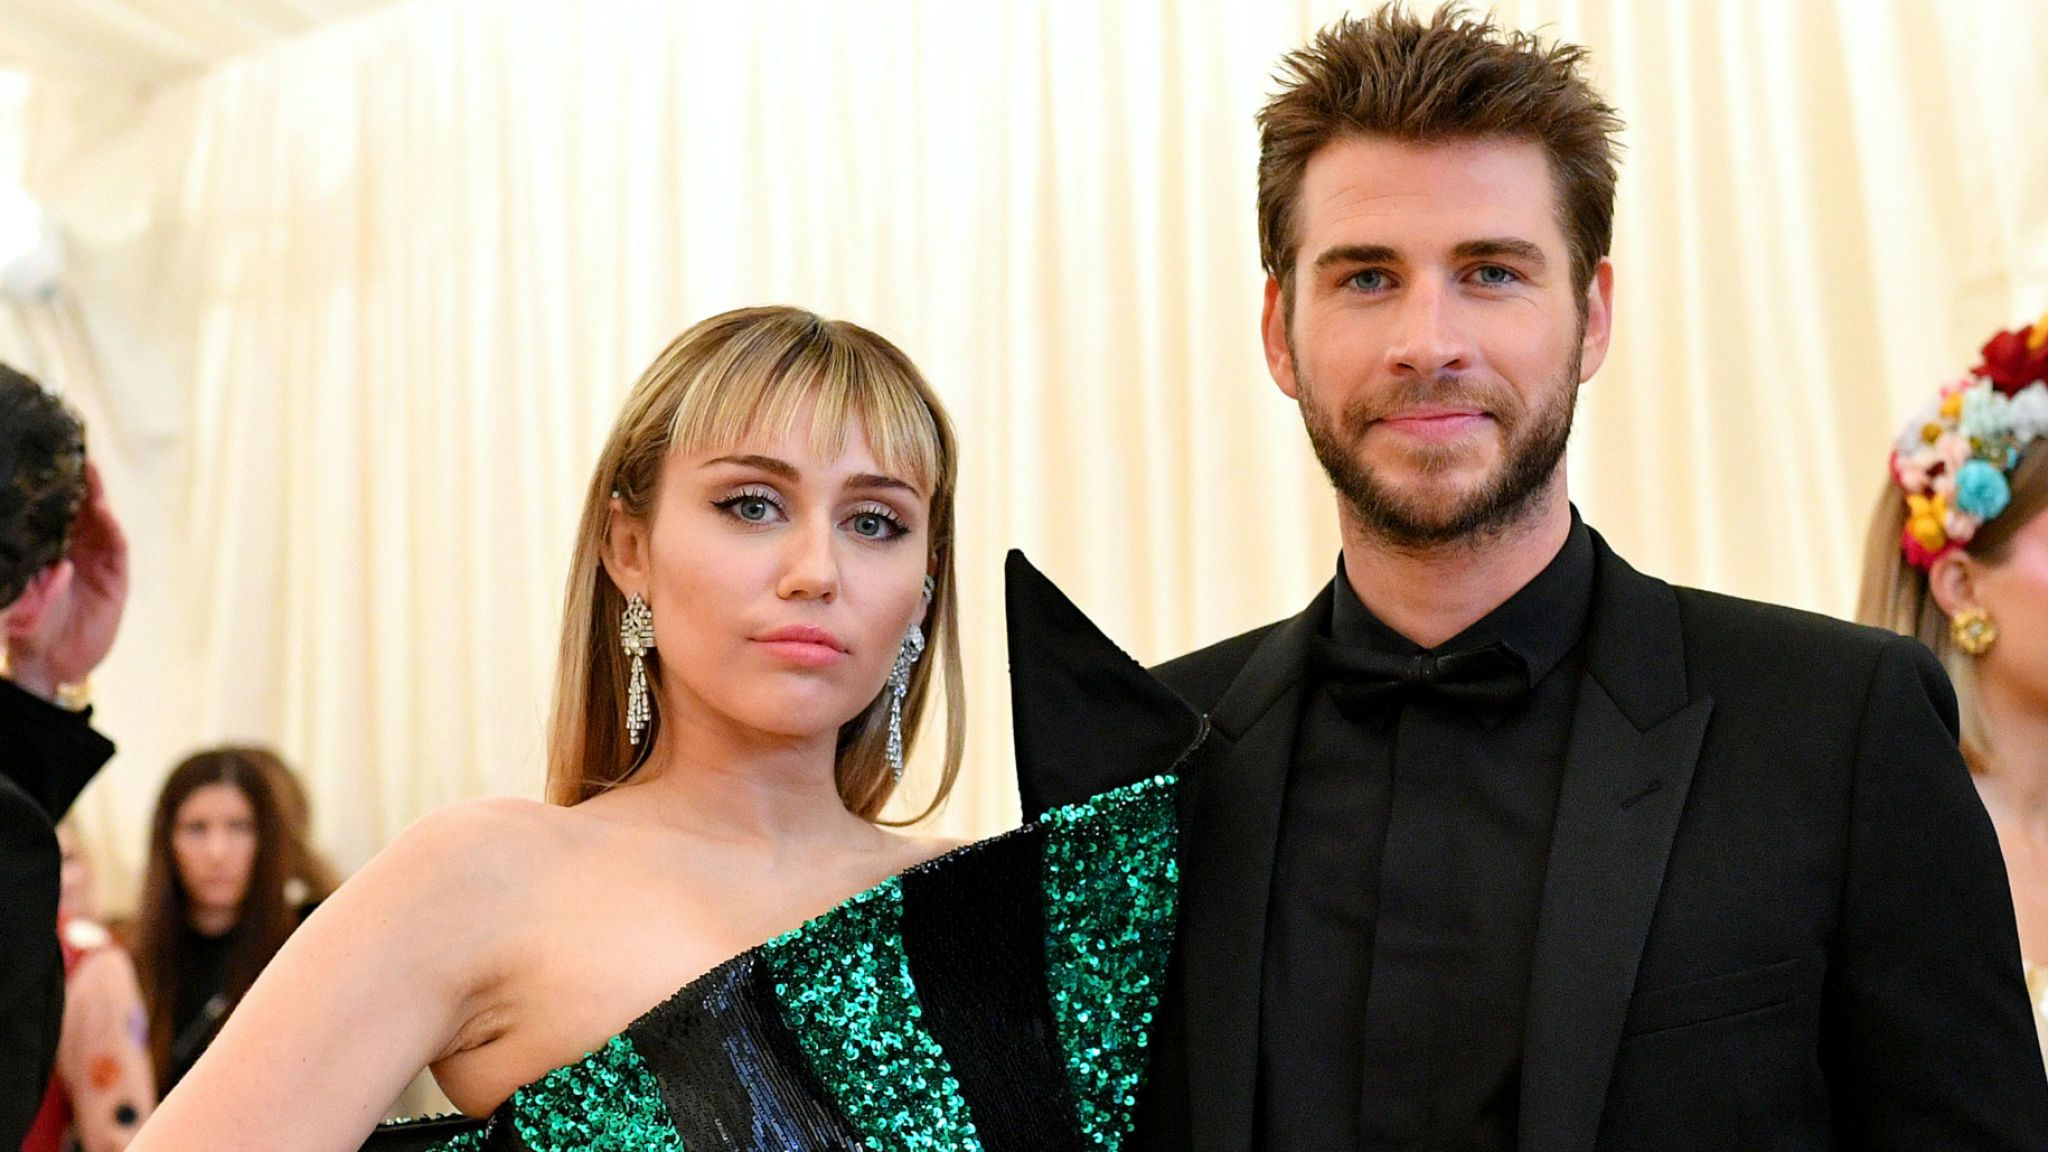 miley Cyrus and Liam Hemsworth attend The 2019 Met Gala Celebrating Camp: Notes On Fashion at The Metropolitan Museum of Art on May 06, 2019 in New York City